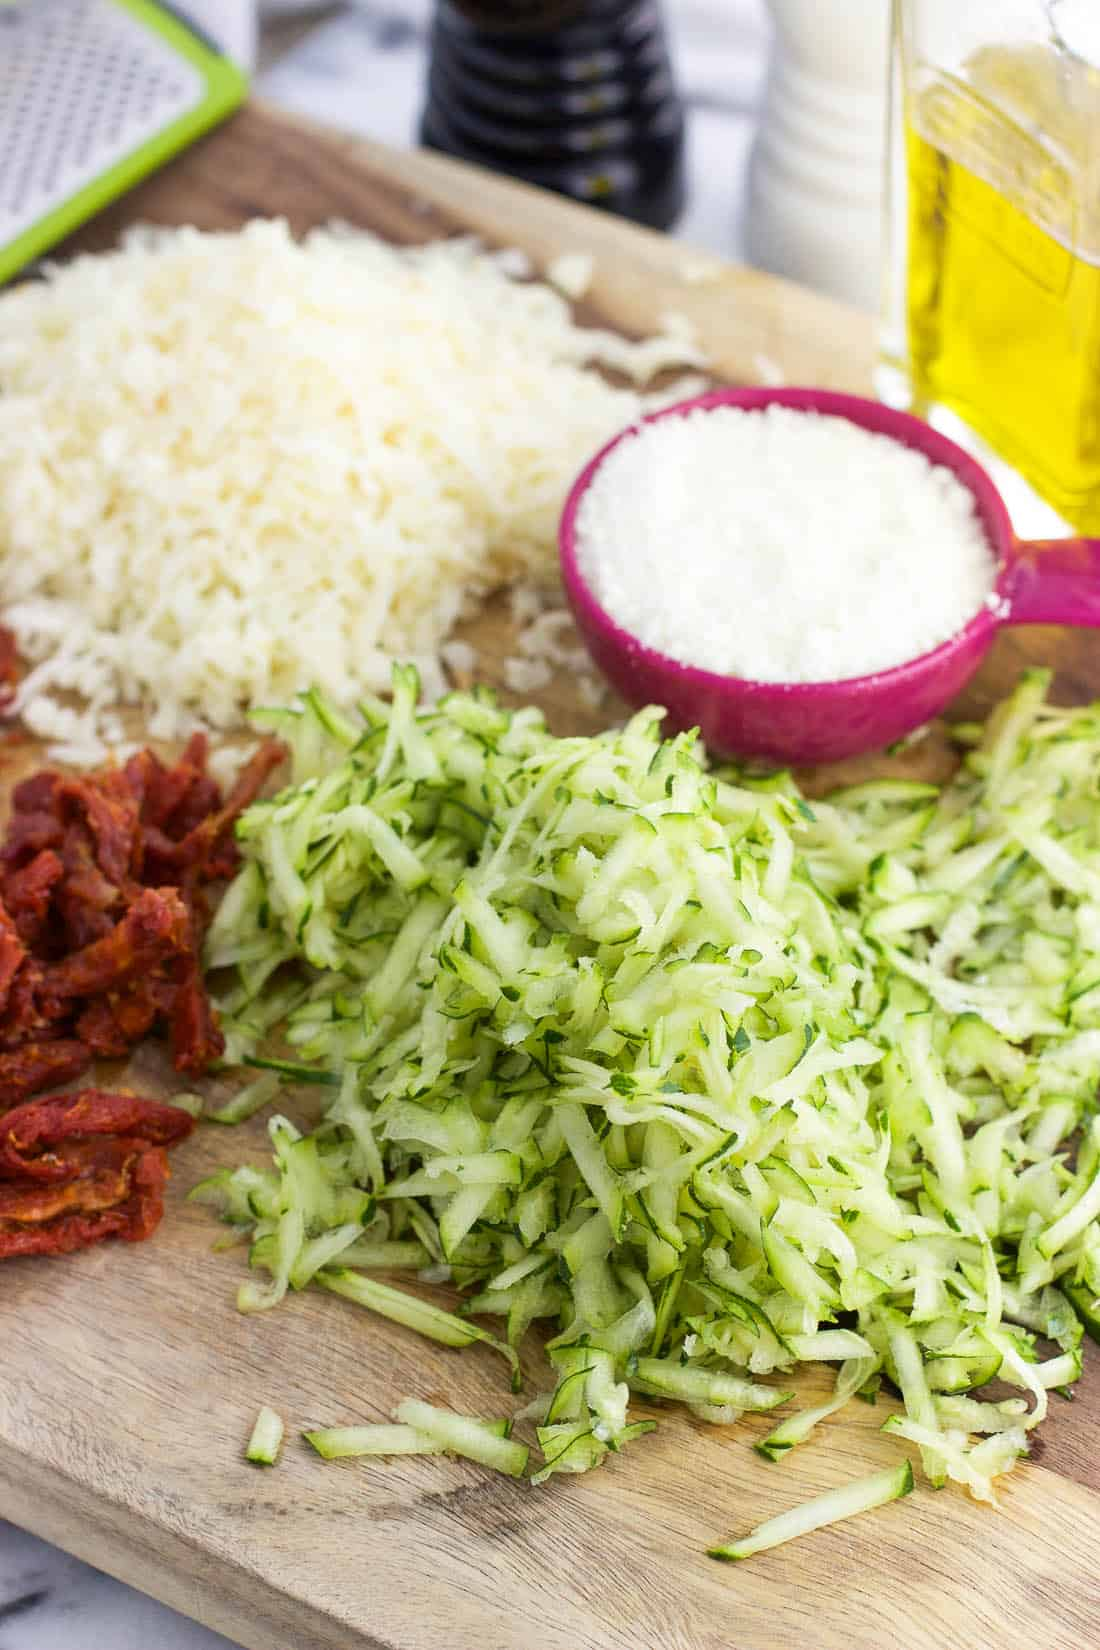 Shredded cheese, Parmesan, sun-dried tomatoes, and shredded zucchini on a wooden cutting board